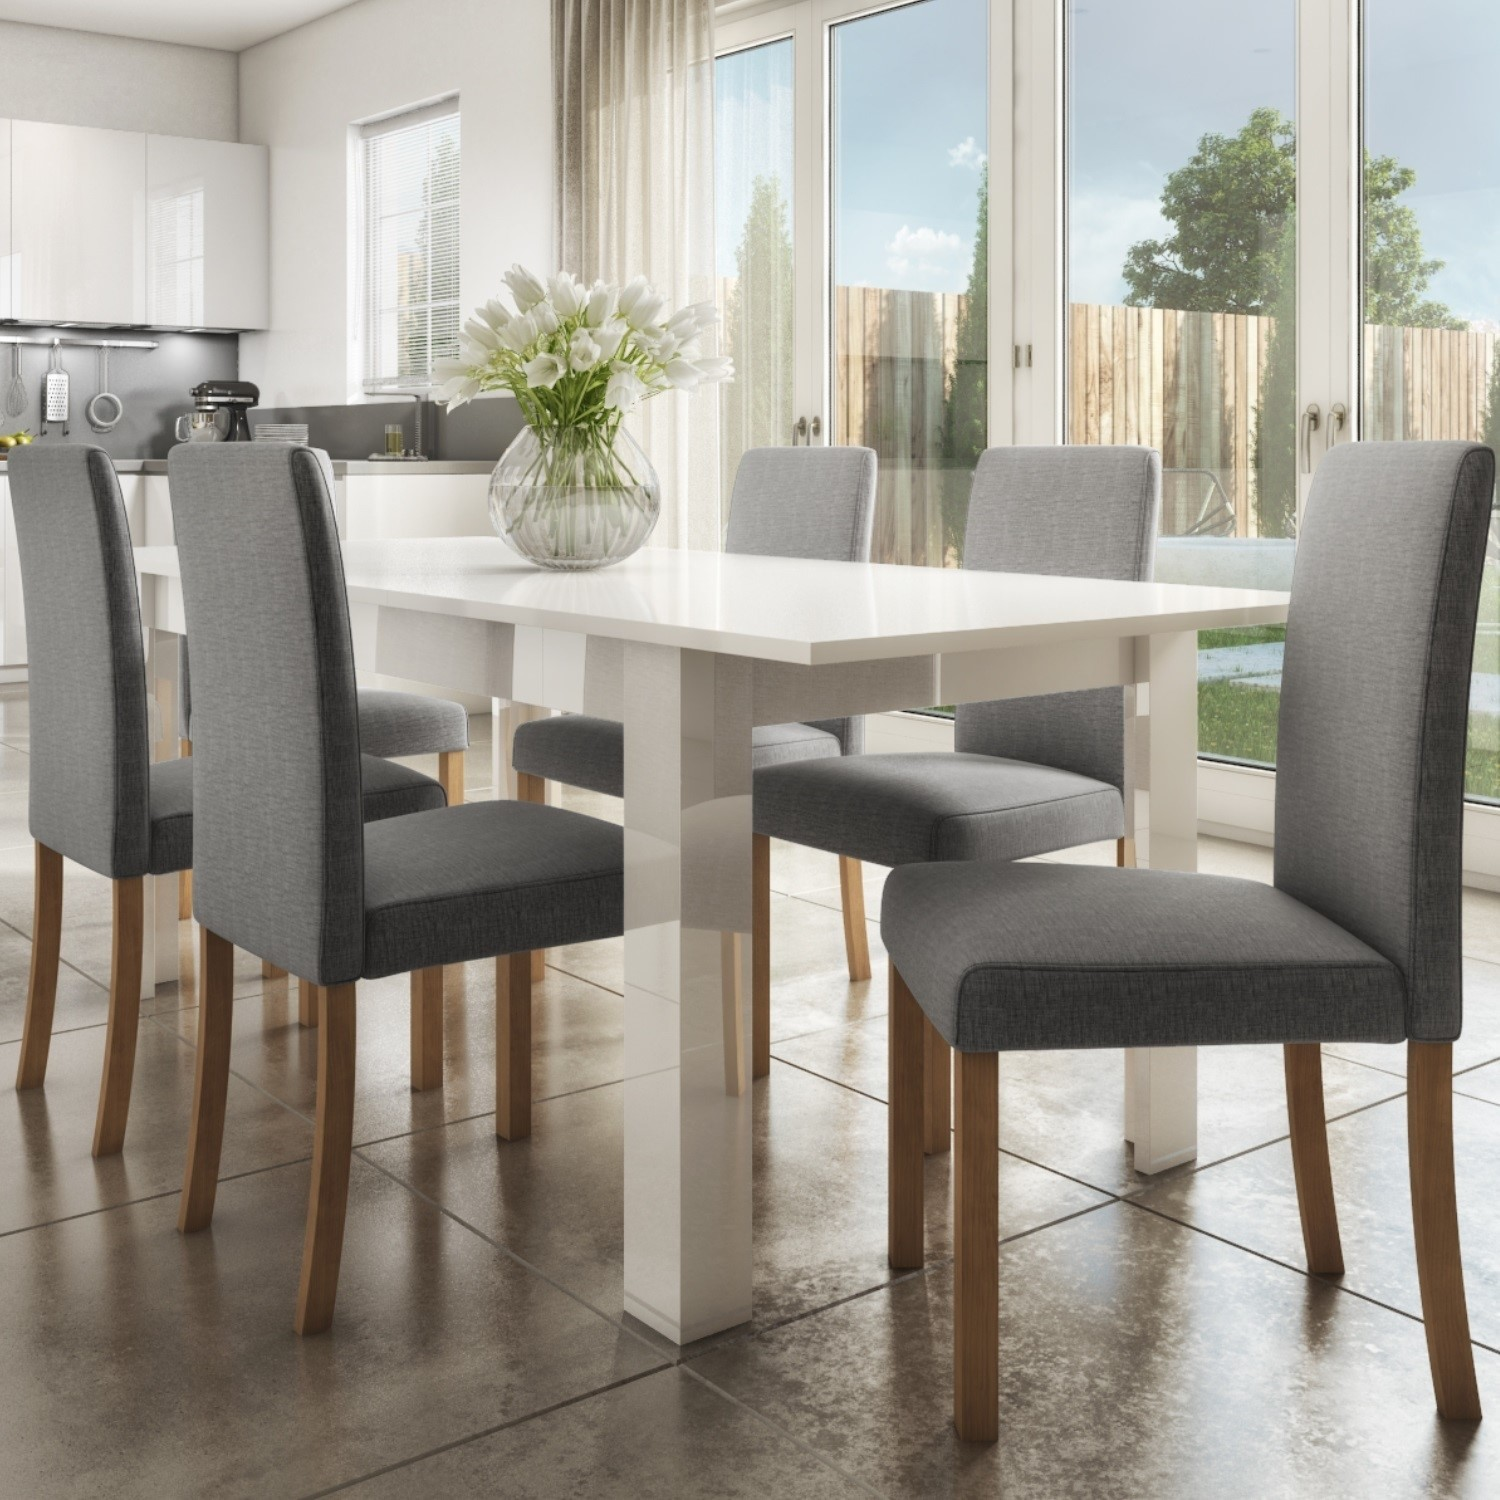 vivienne extendable white high gloss dining table 6 grey fabric rh furniture123 co uk